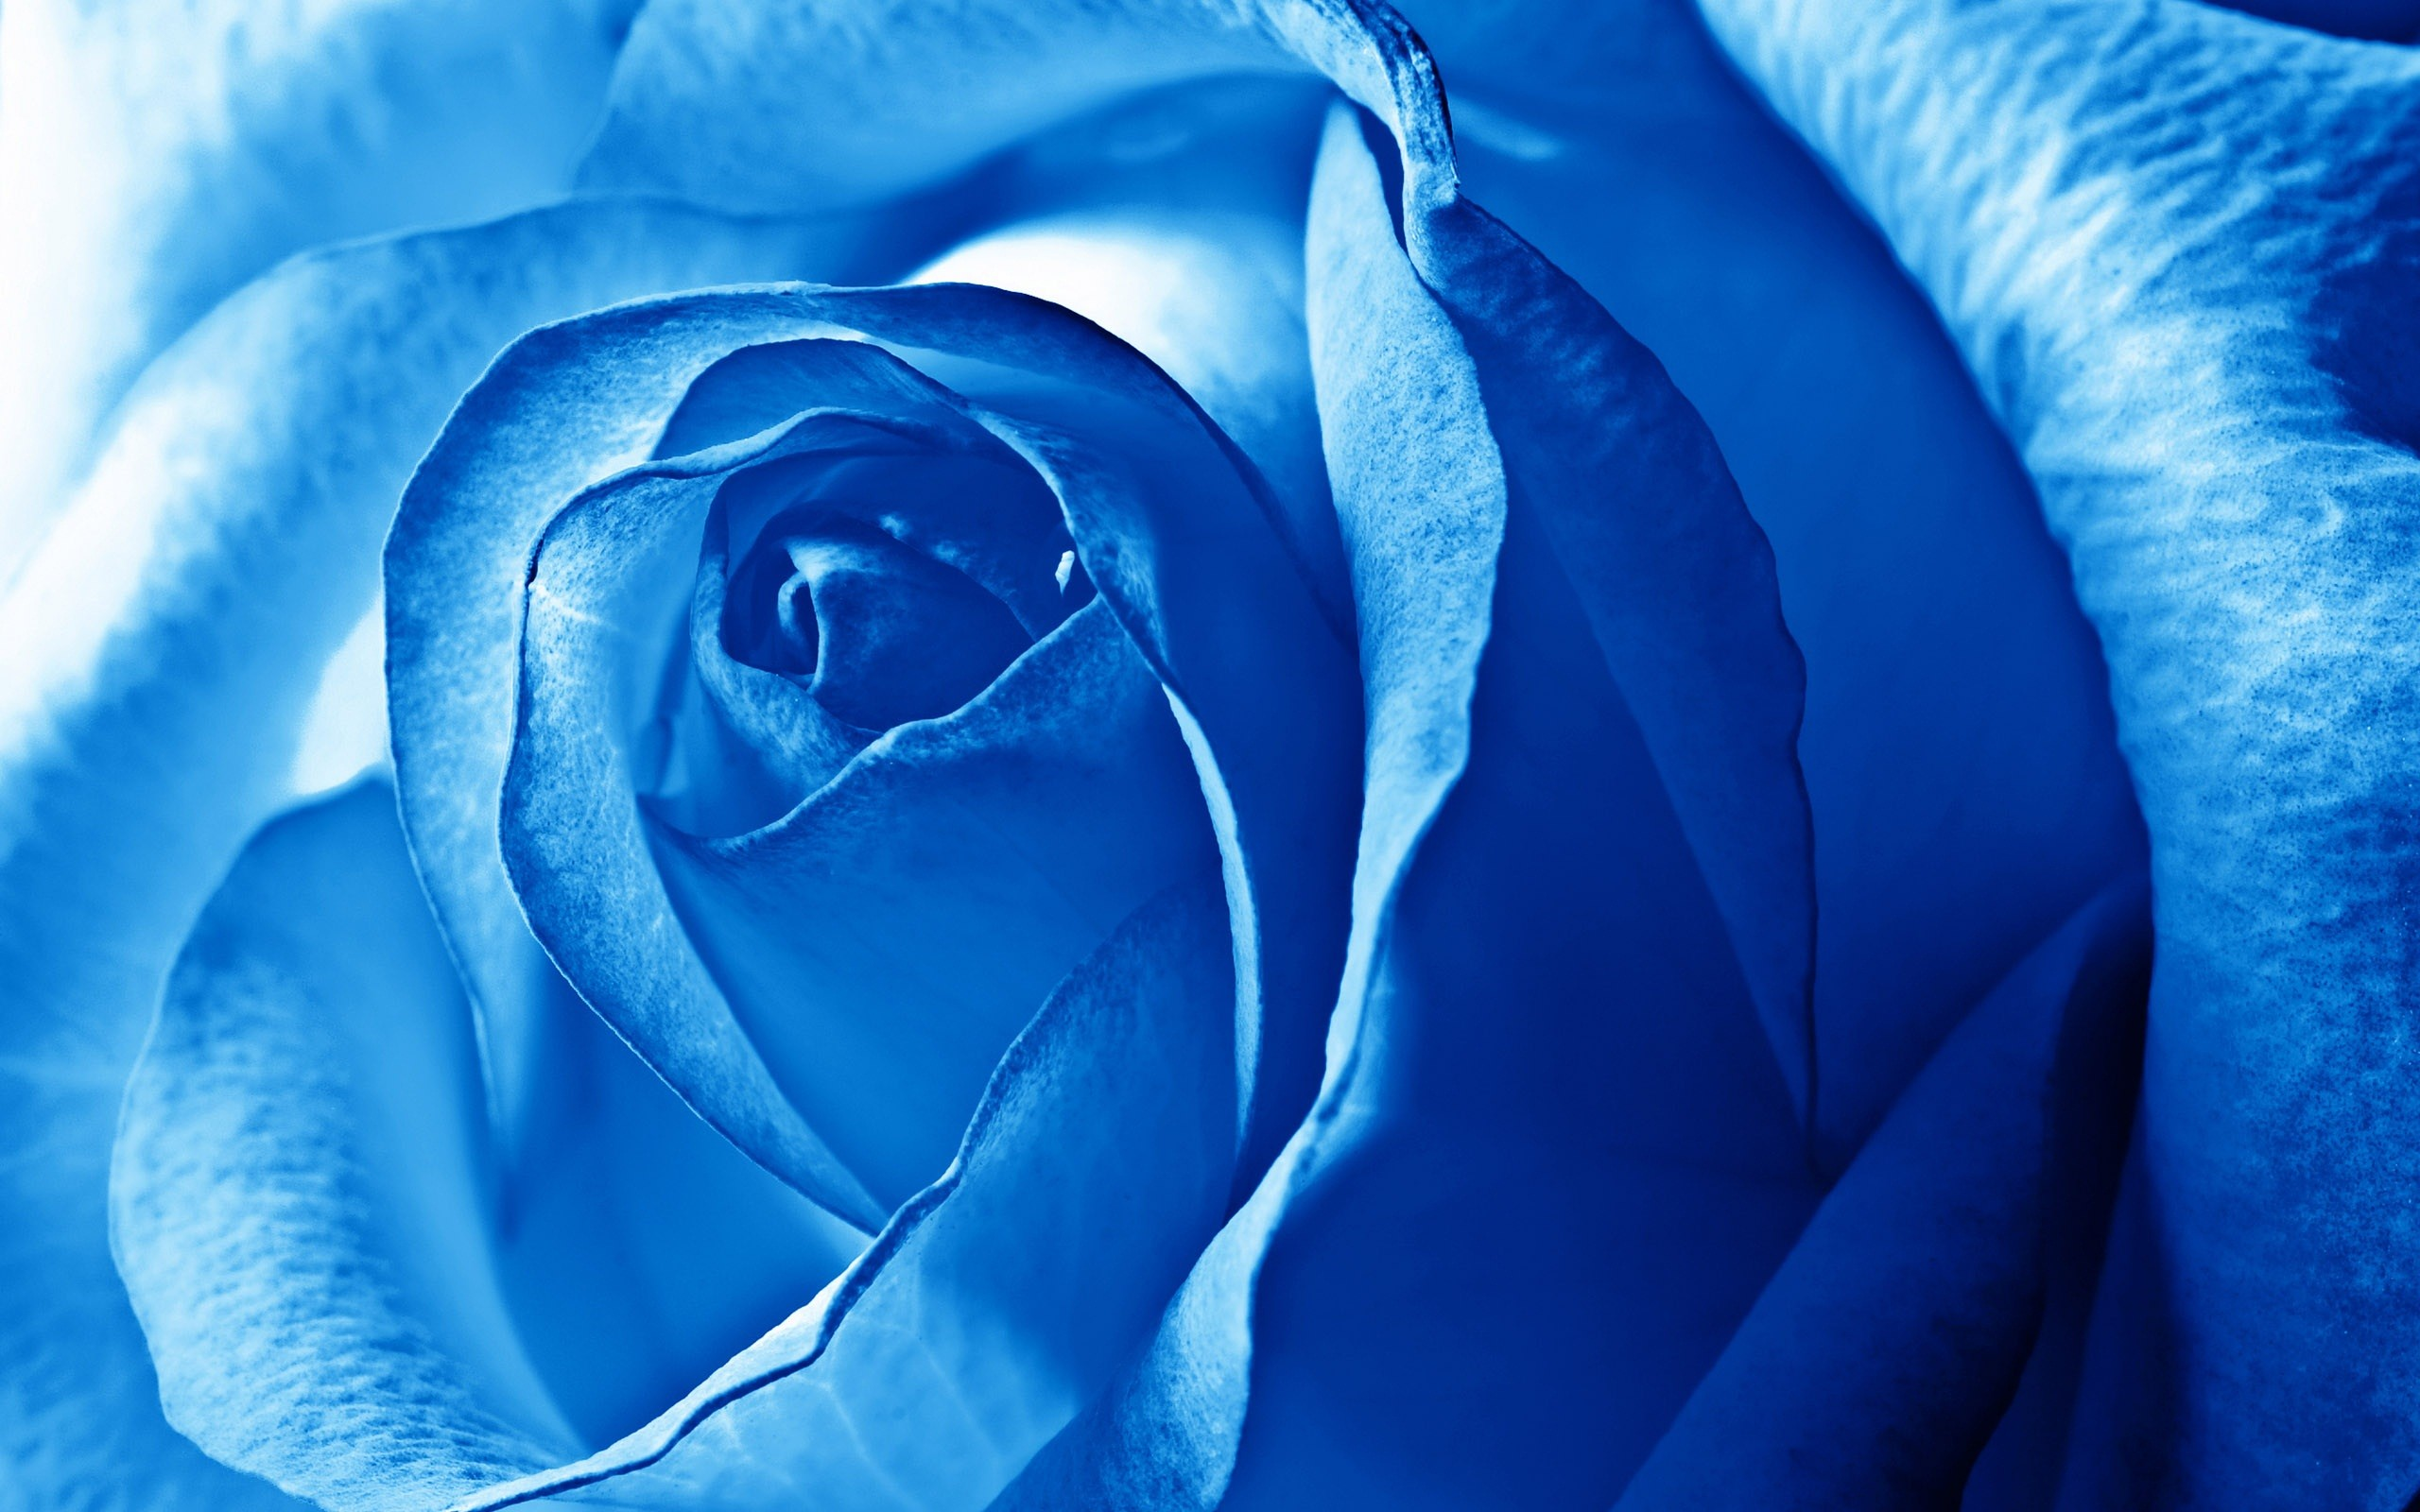 Blue flowers wallpapers 67 background pictures 1080x1920 beautiful blue flowers iphone wallpaper izmirmasajfo